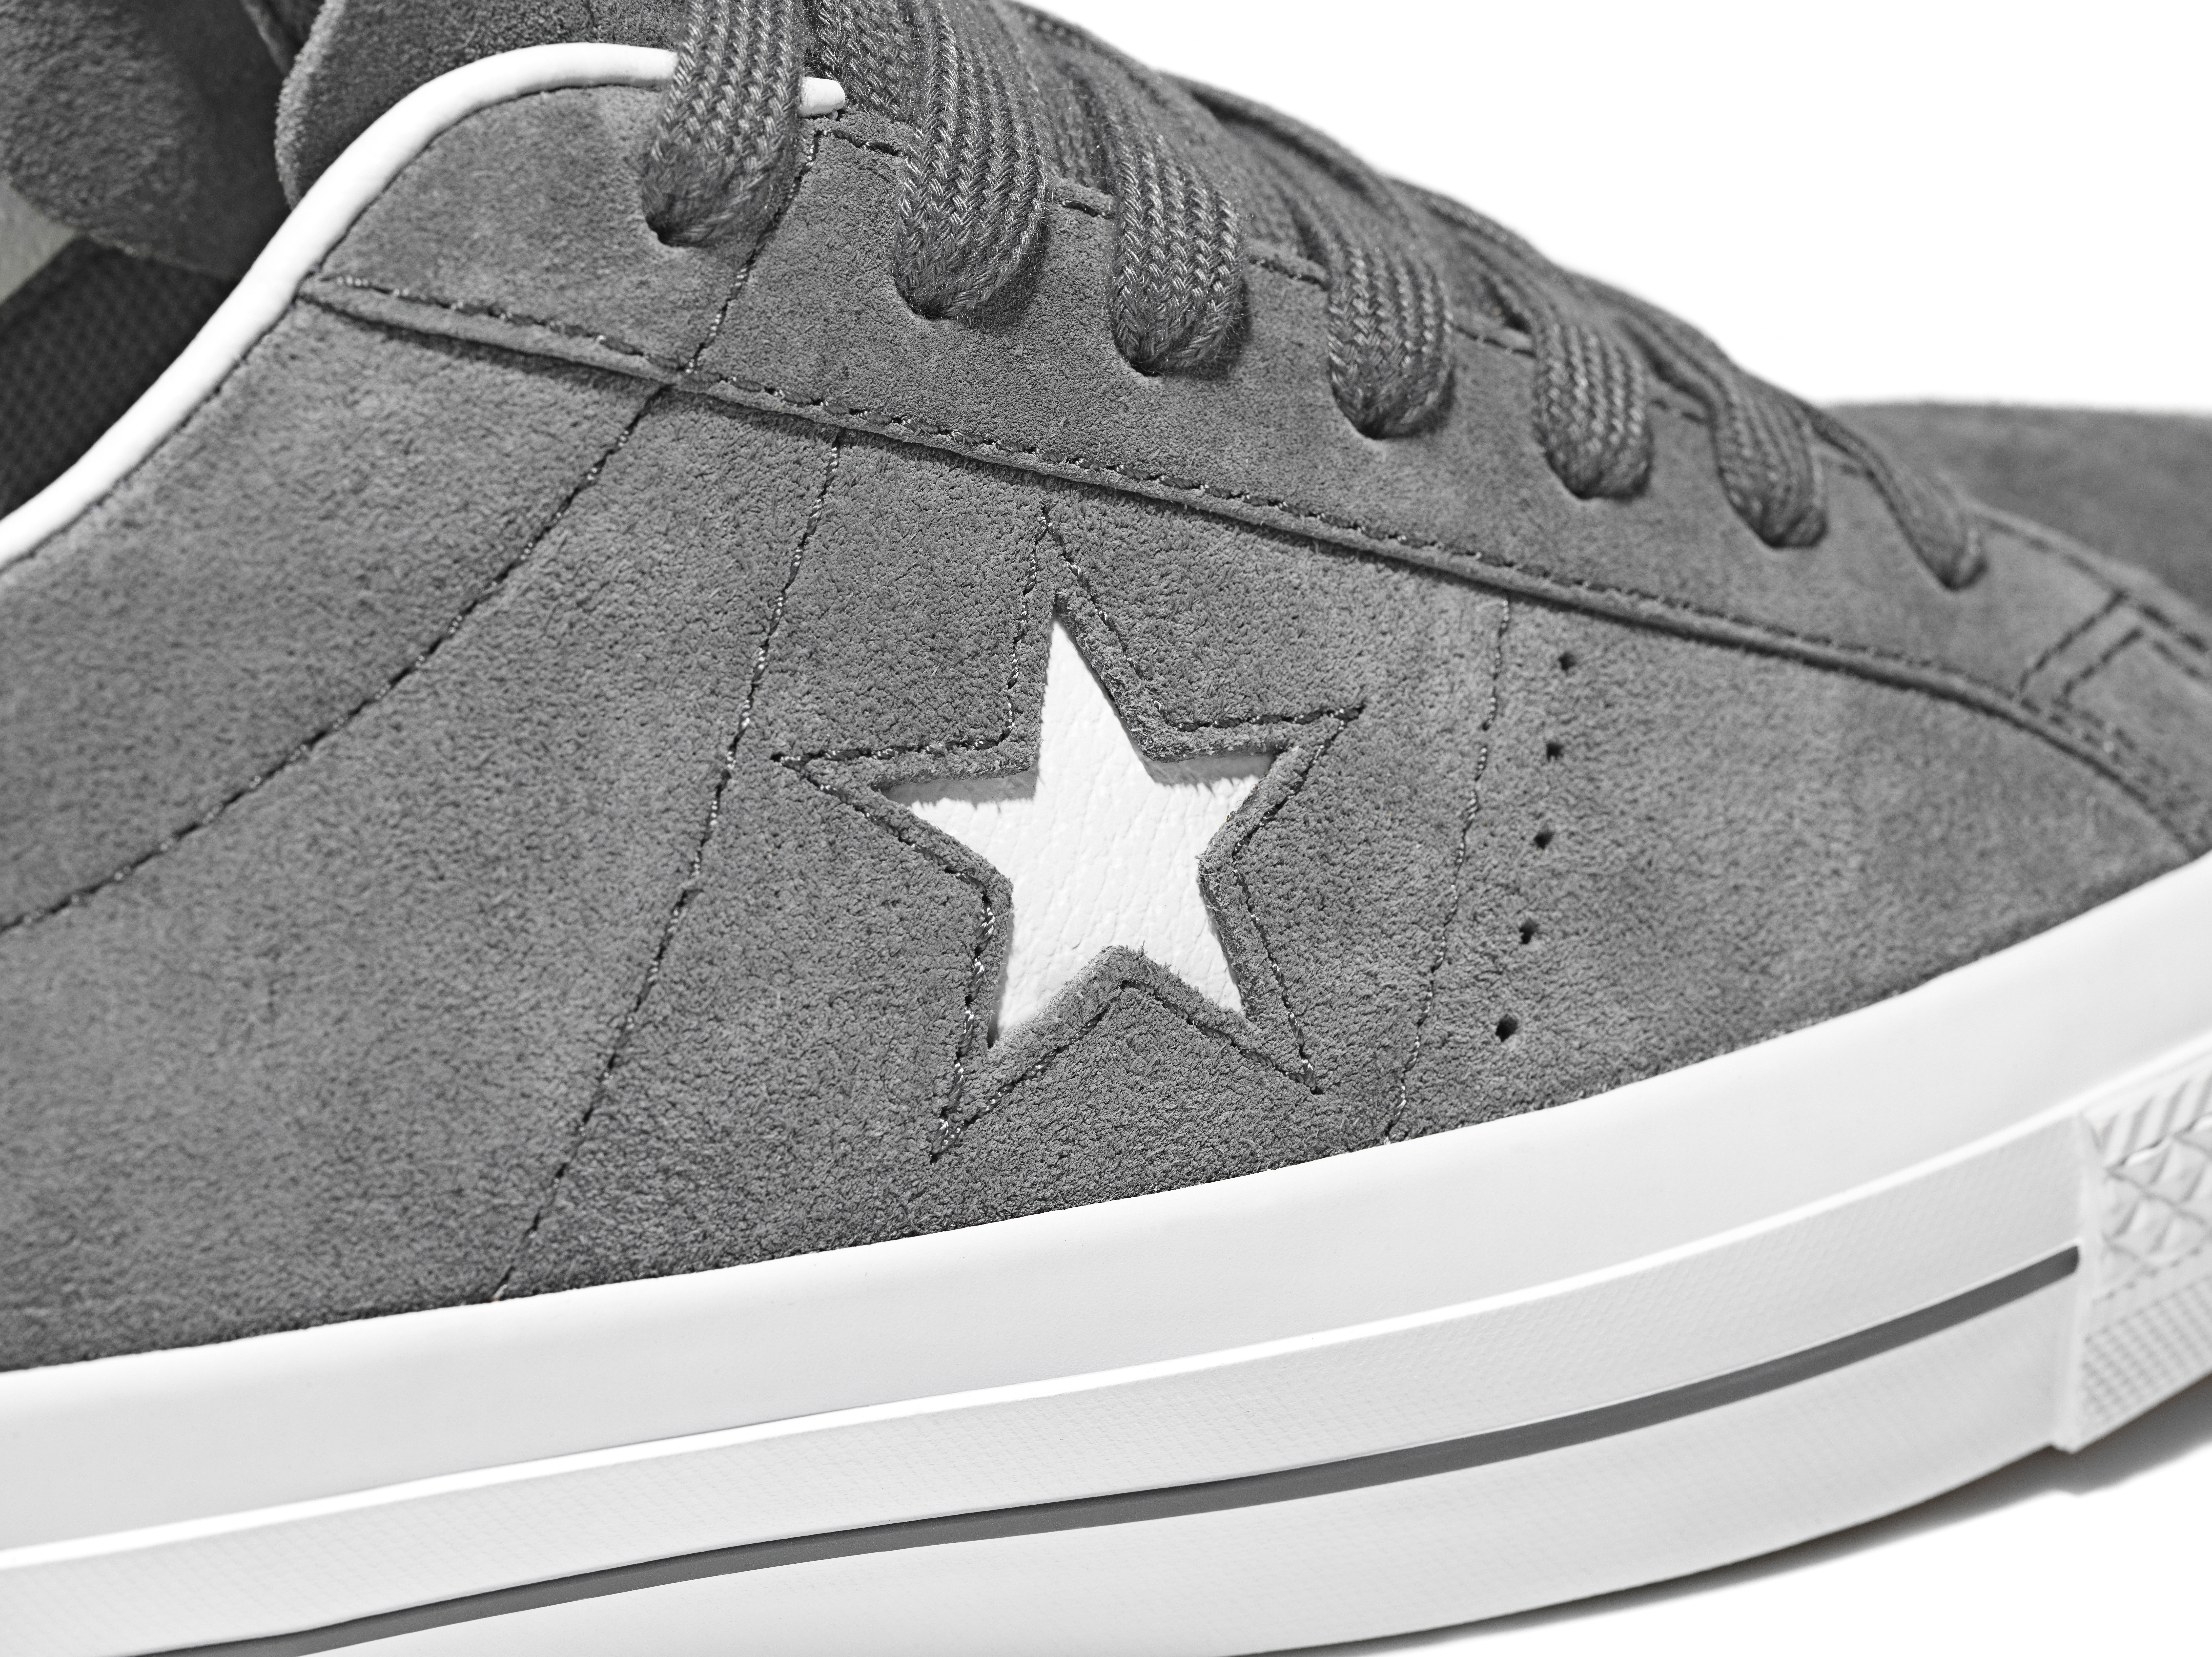 FH16_Cons_OneStarOx_LongHairSuede_Gray_Detail1_153962